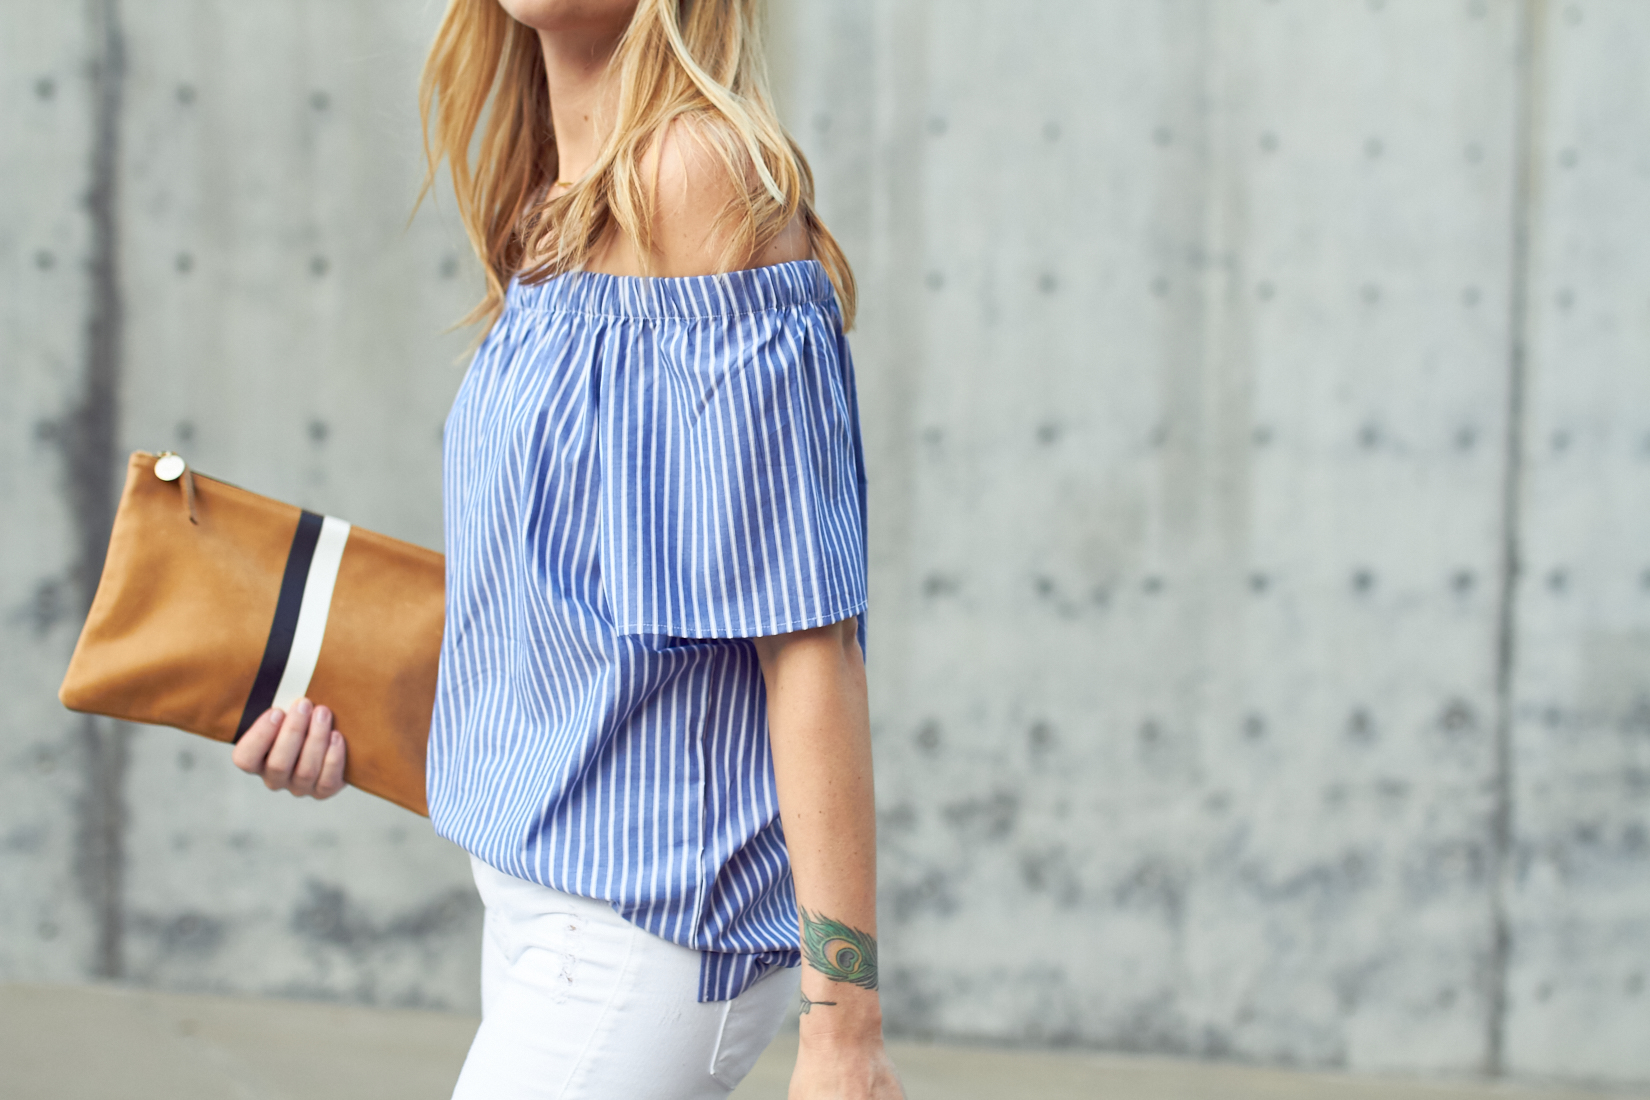 fashion-jackson-banana-republic-blue-stripe-off-the-shoulder-top-clare-v-clutch